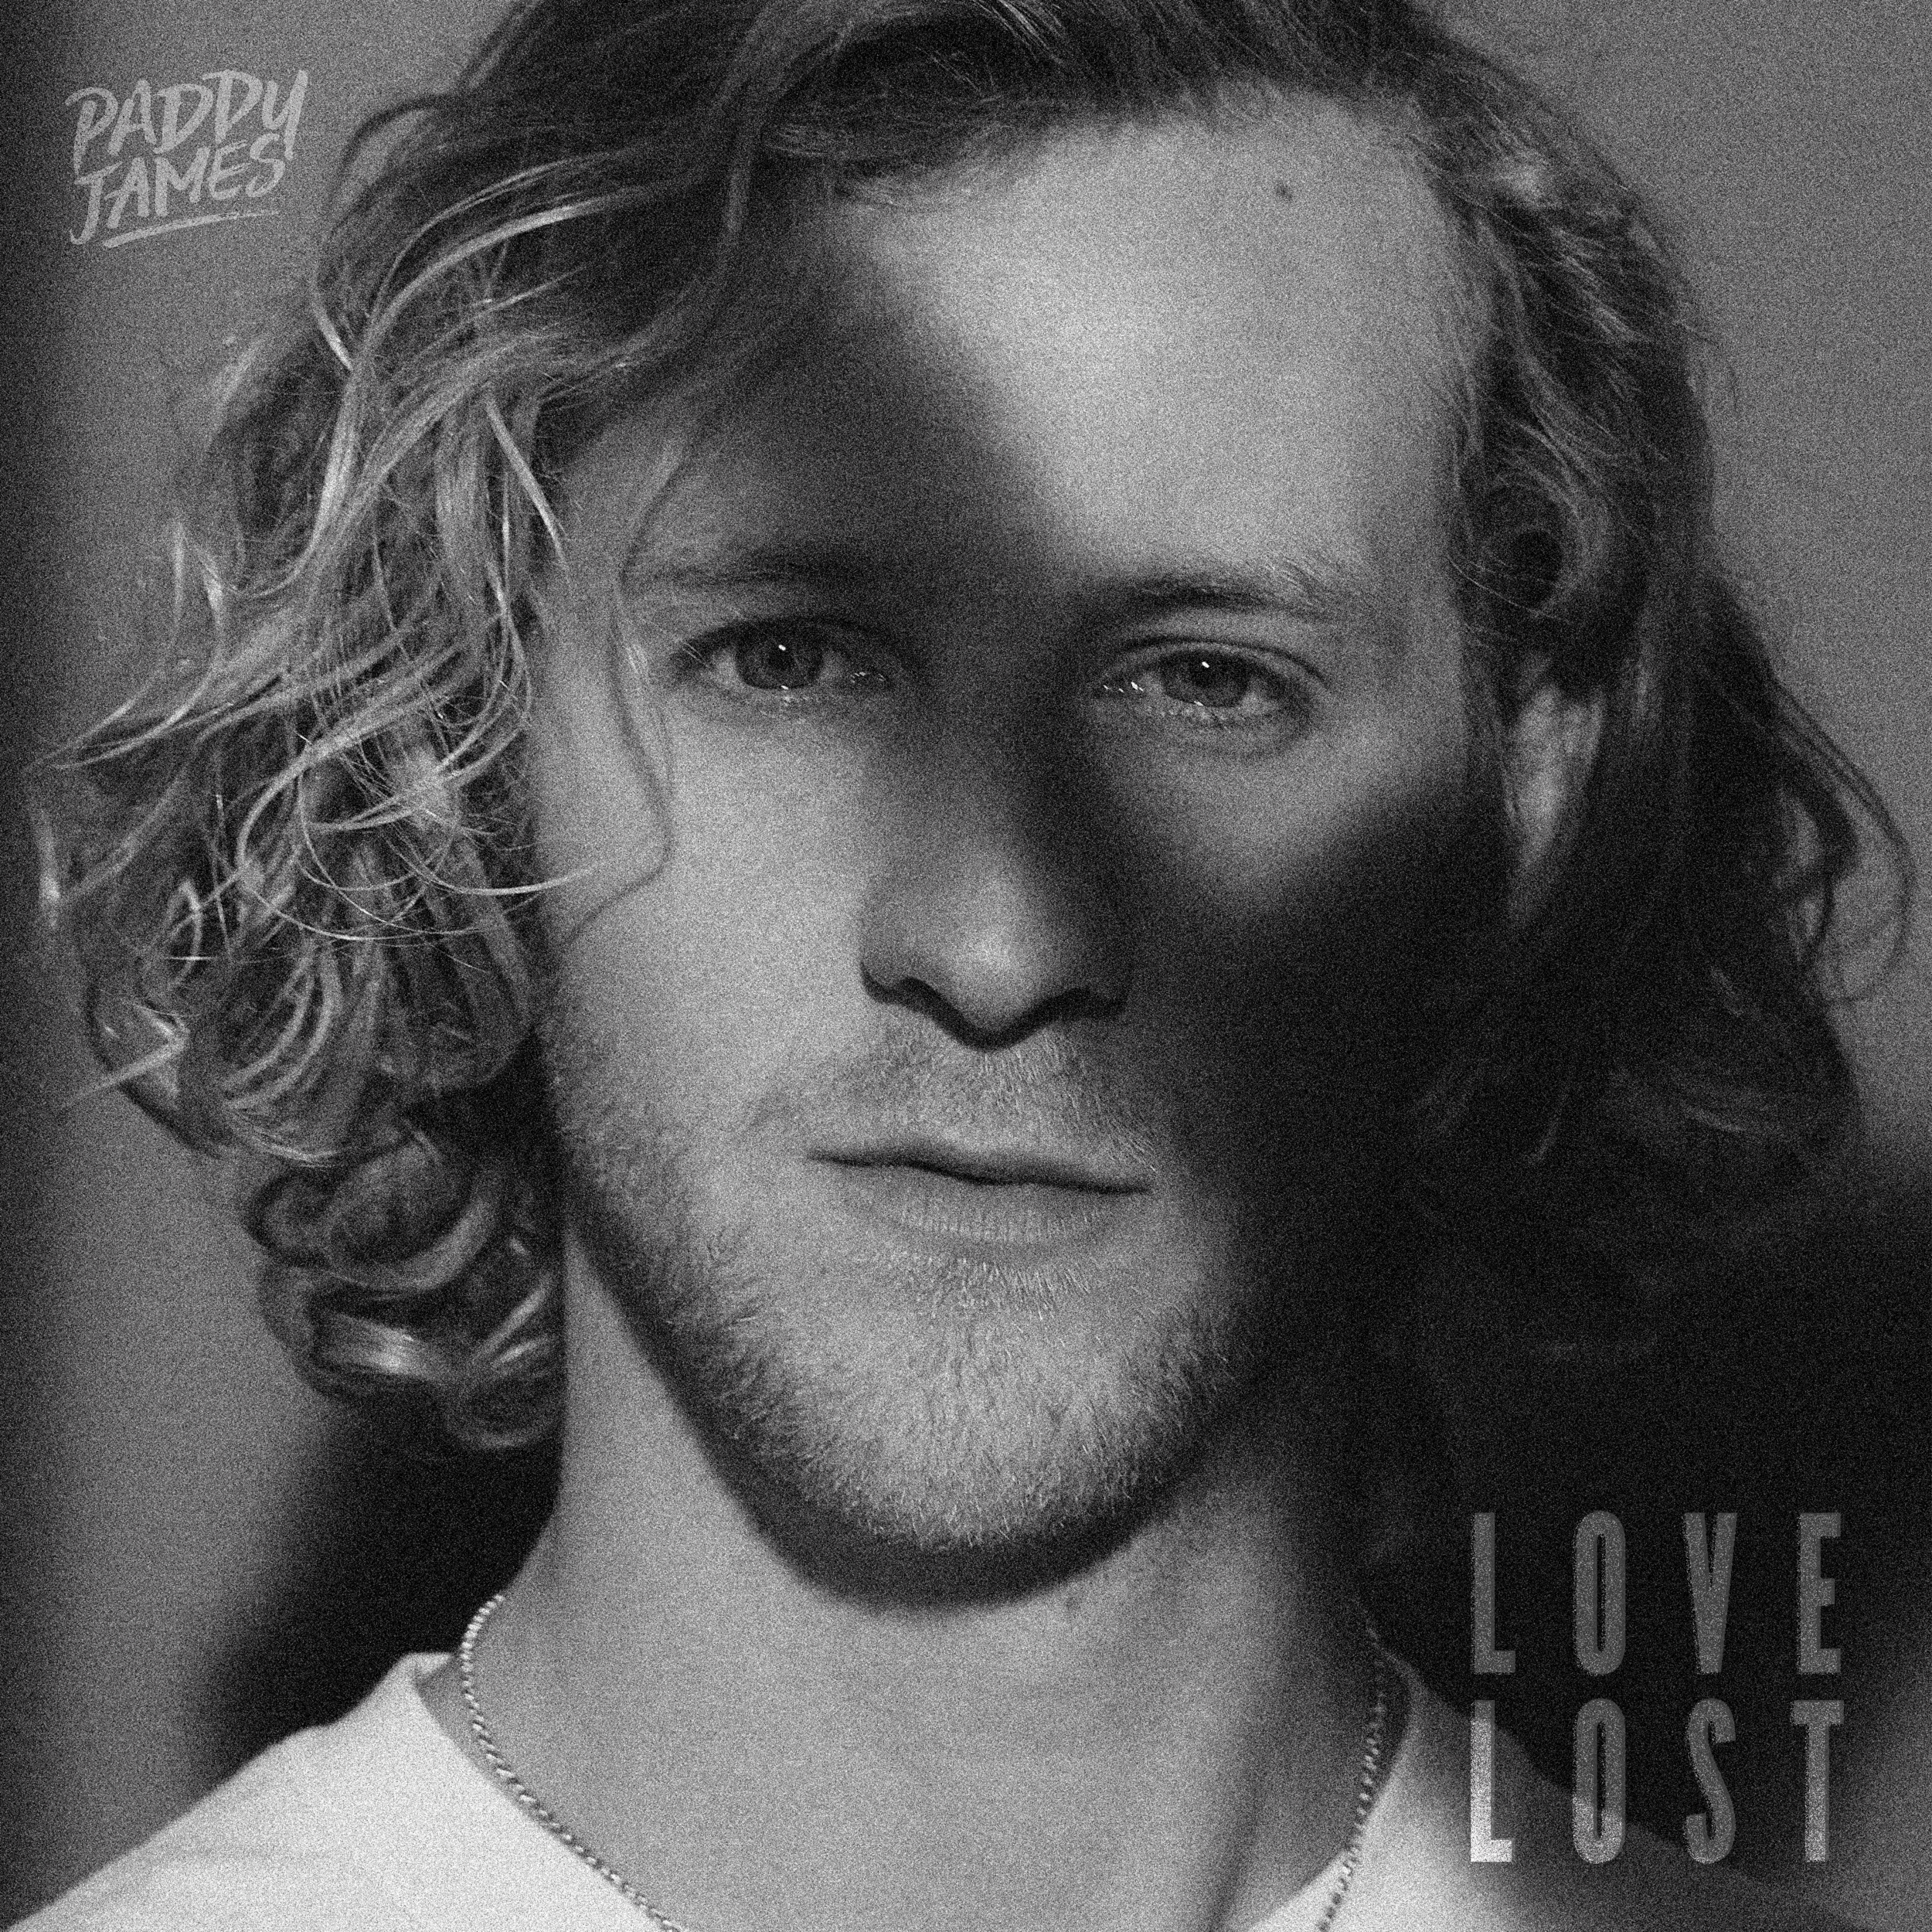 Love Lost - Paddy James